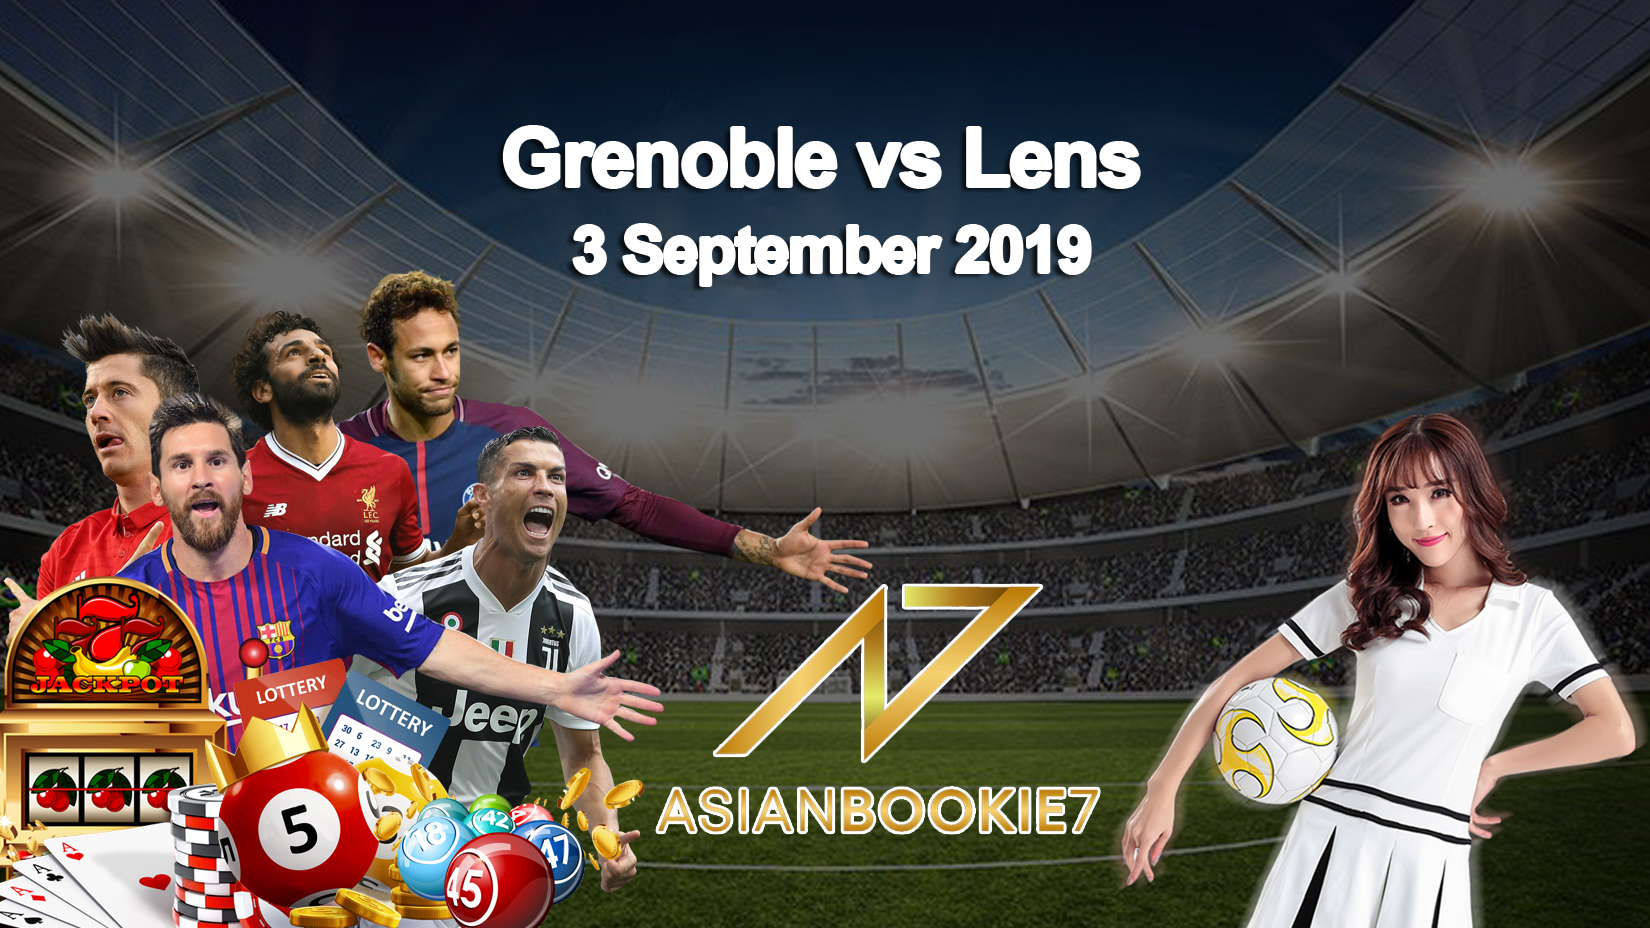 Prediksi Grenoble vs Lens 3 September 2019